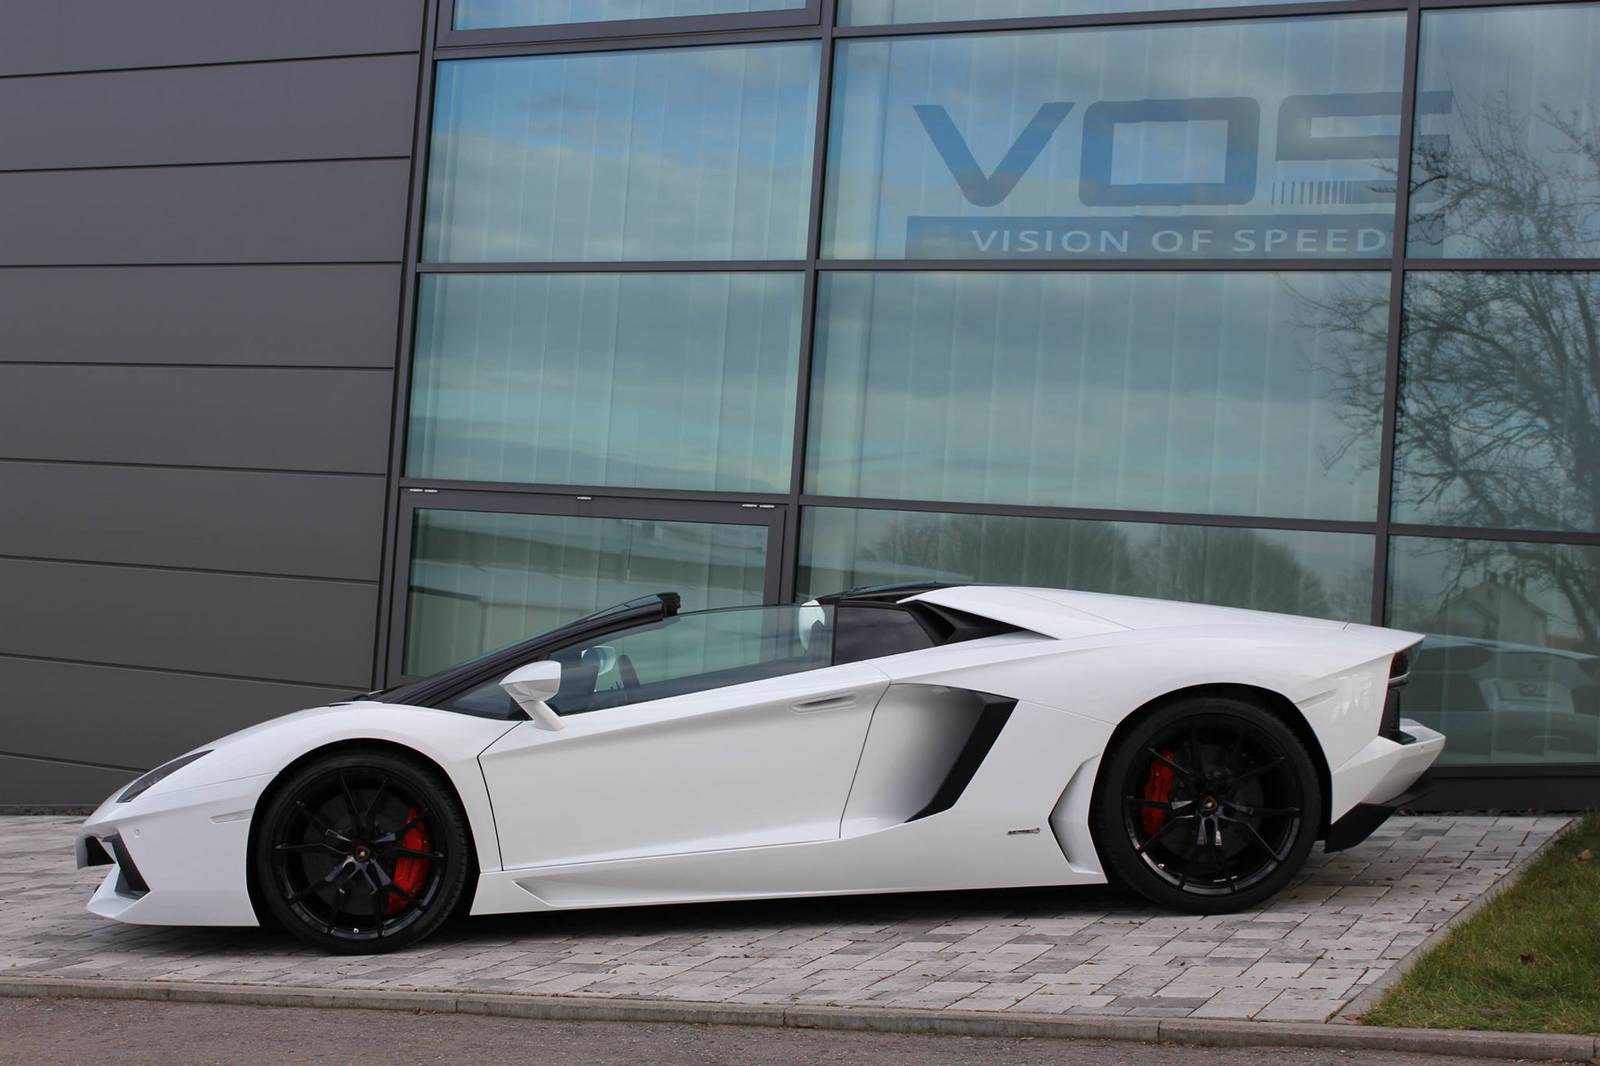 the aventador roadster features a centrally located 65 liter aspirated v12 generating 700hp an isr seven speed gearbox and push rod suspension